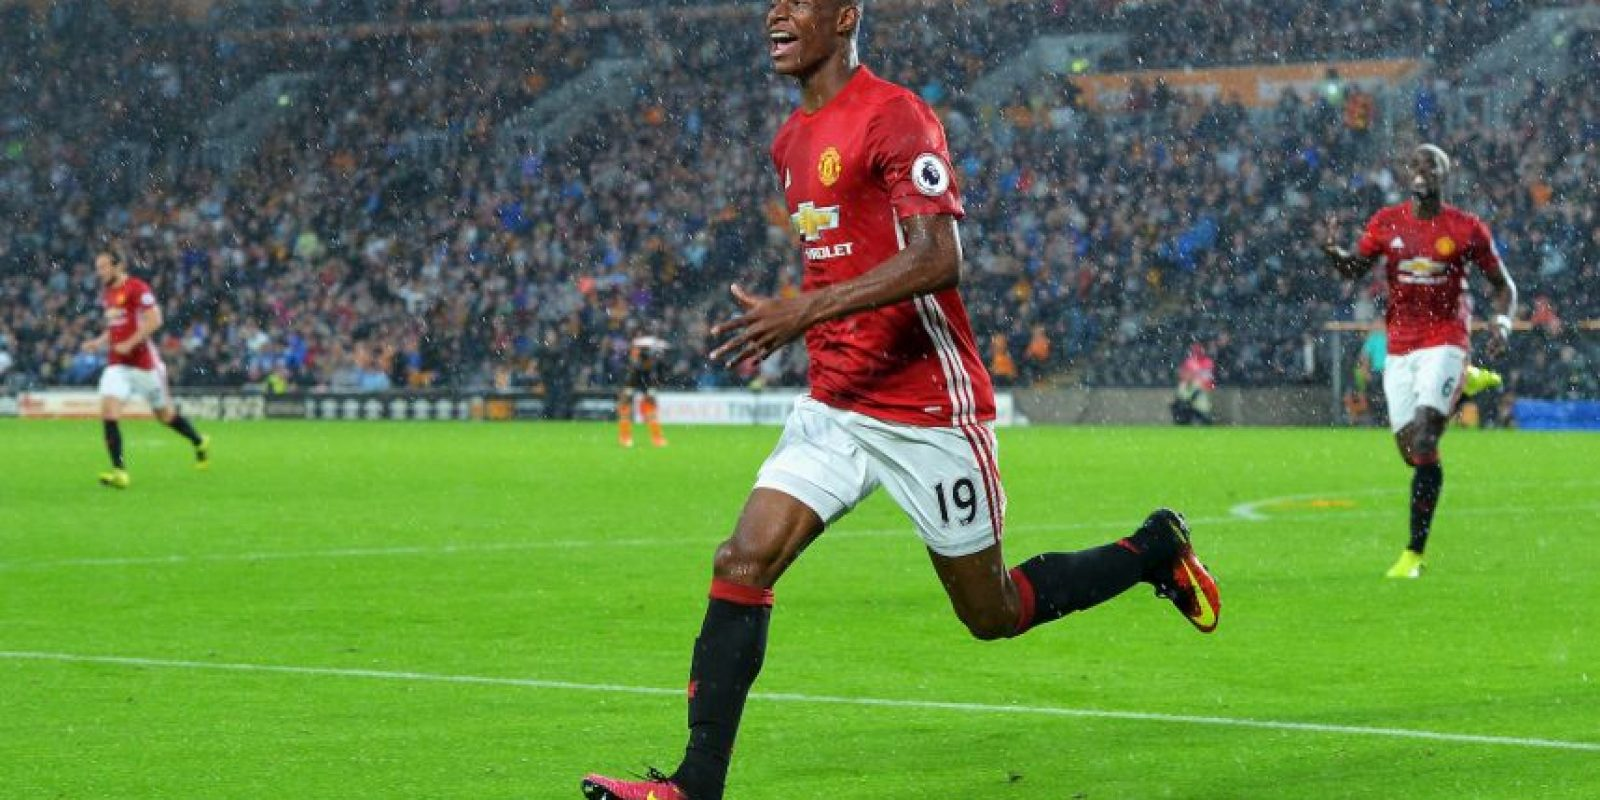 5.-Marcus Rashford – 18 años (Manchester United) Foto: Getty Images